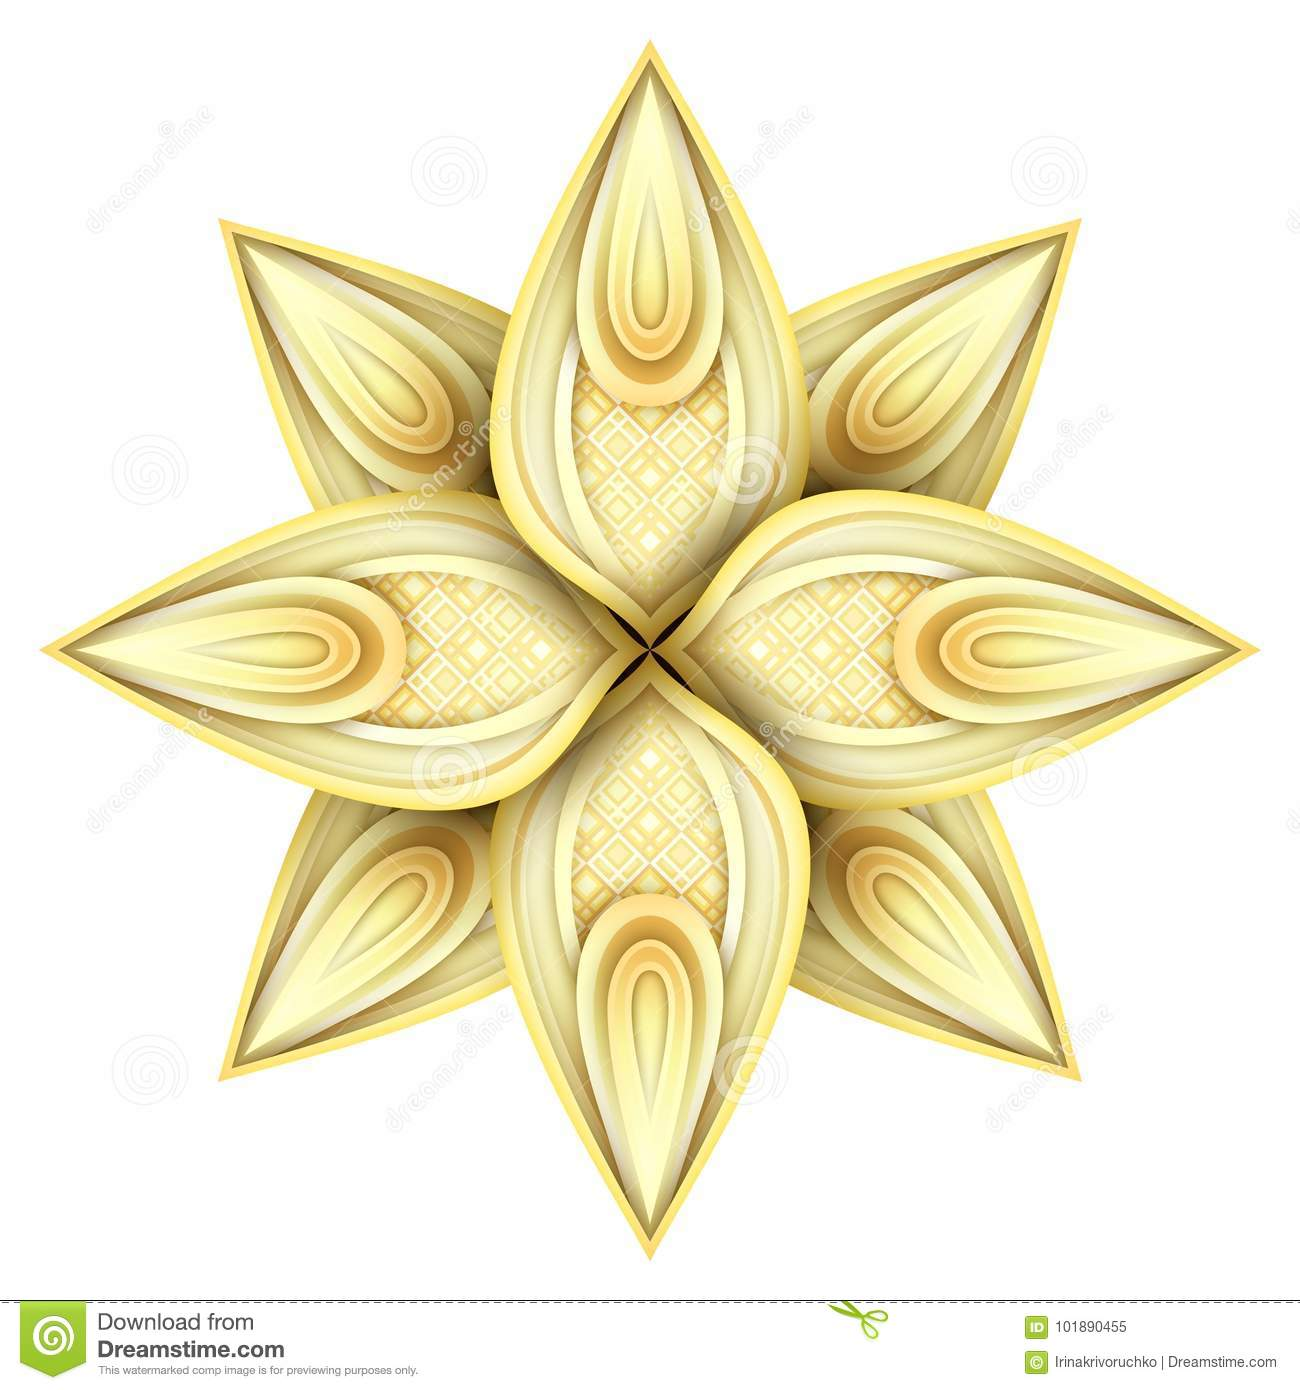 Gold Beautiful Decorative Ornate Mandala